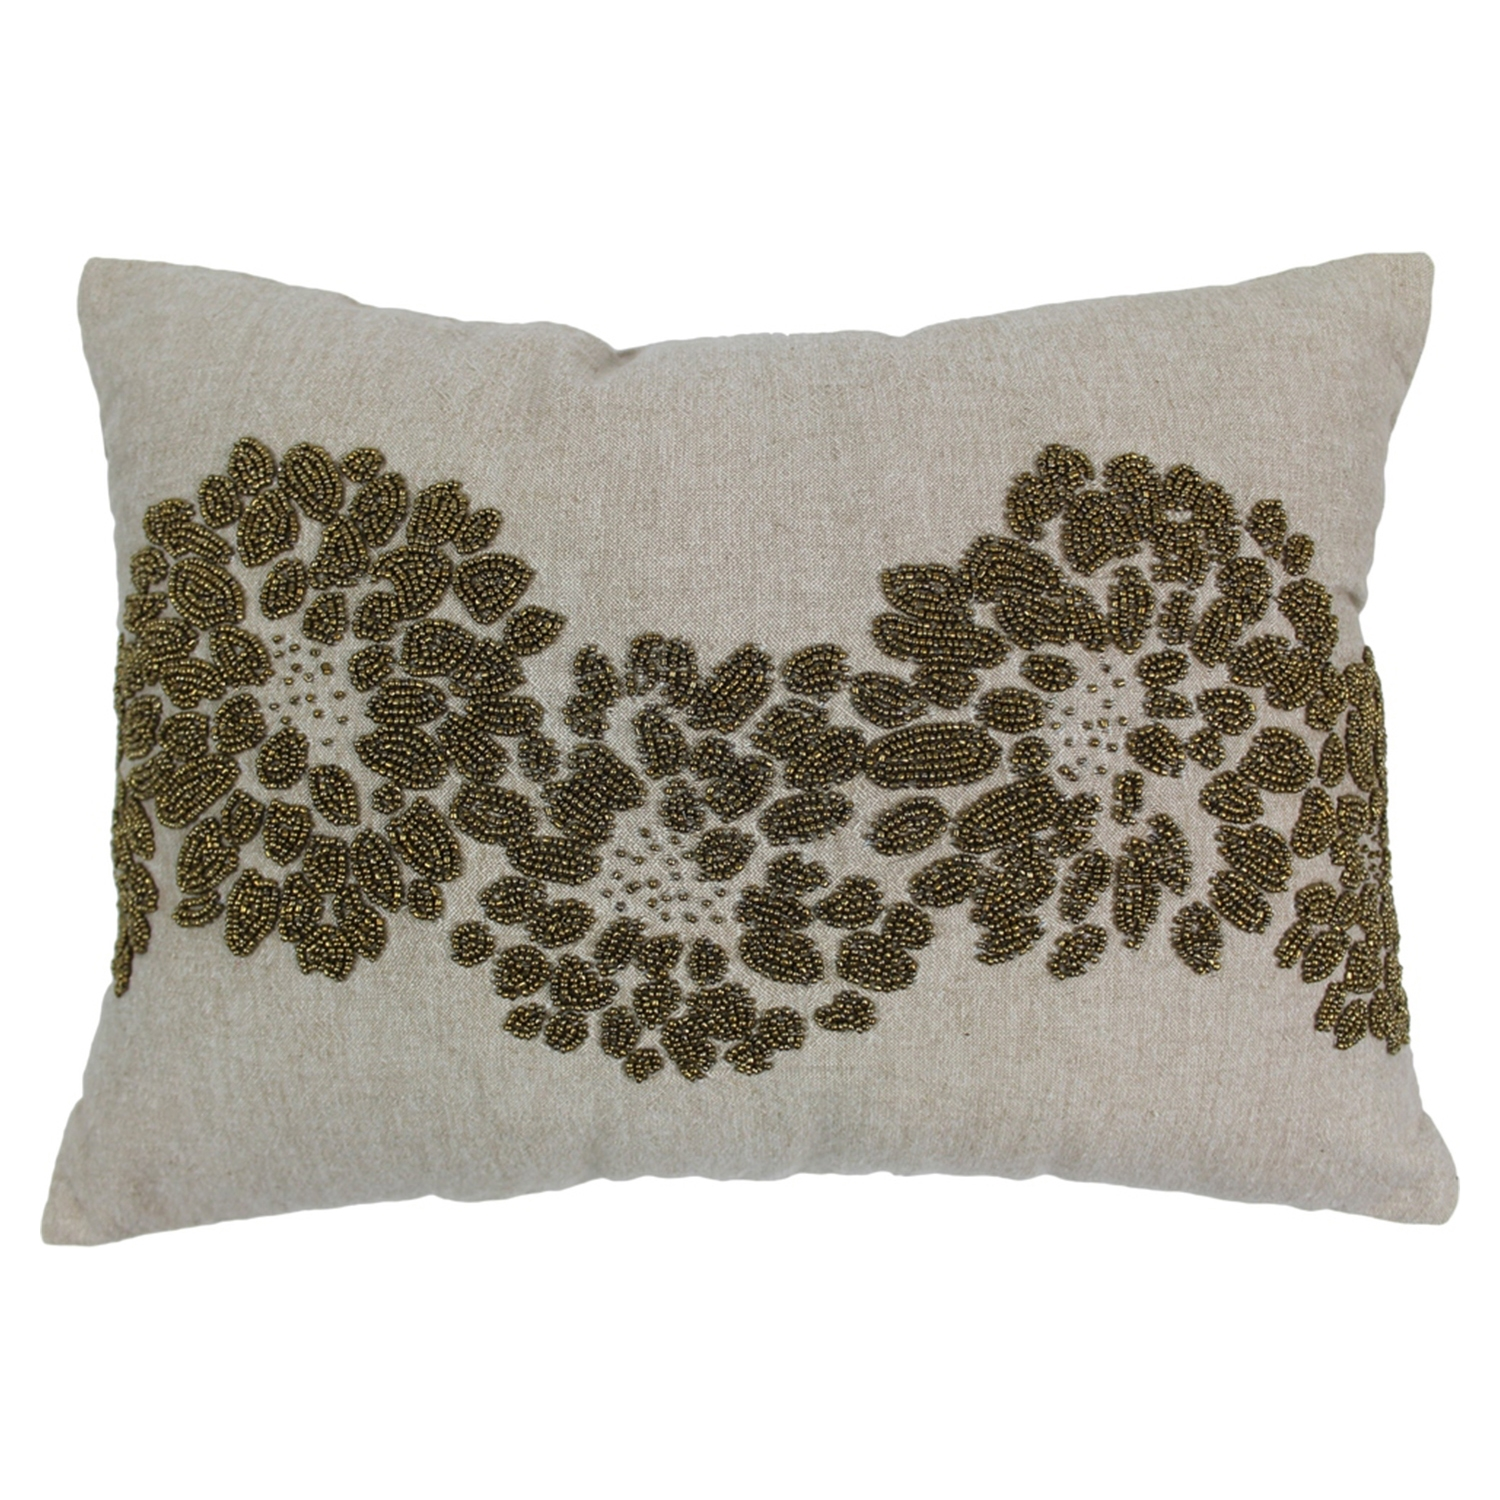 Floral Pattern Beaded Chambrey Throw Pillows - Gold Beads and Natural Fabric (Set of 2) - BLZ-IN-20711-18-13-S2